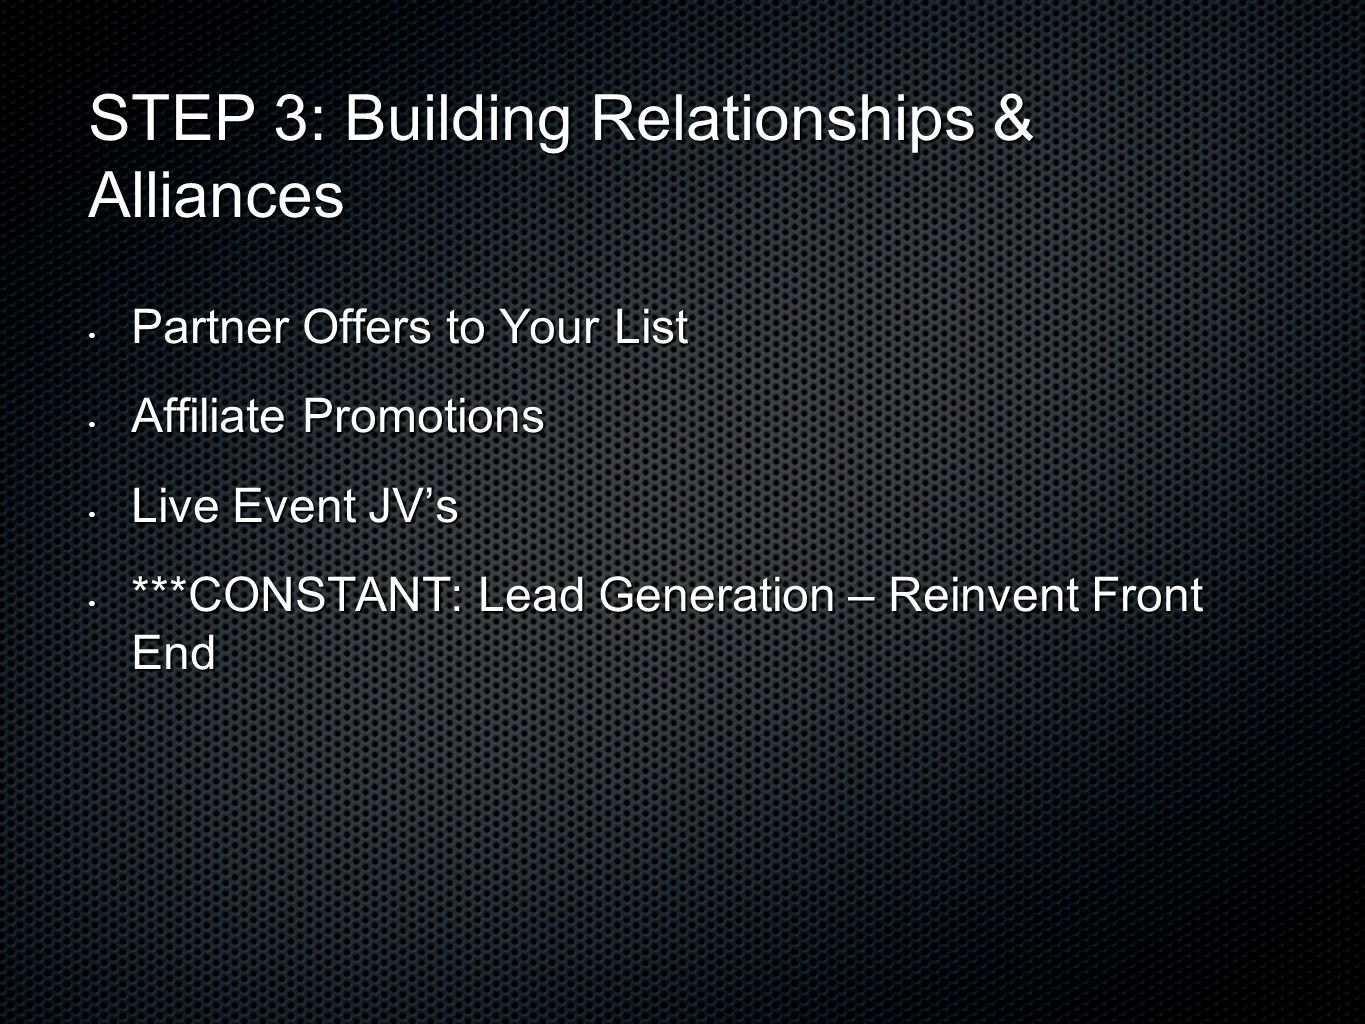 STEP 3: Building Relationships & Alliances Partner Offers to Your List Partner Offers to Your List Affiliate Promotions Affiliate Promotions Live Event JV's Live Event JV's ***CONSTANT: Lead Generation – Reinvent Front End ***CONSTANT: Lead Generation – Reinvent Front End